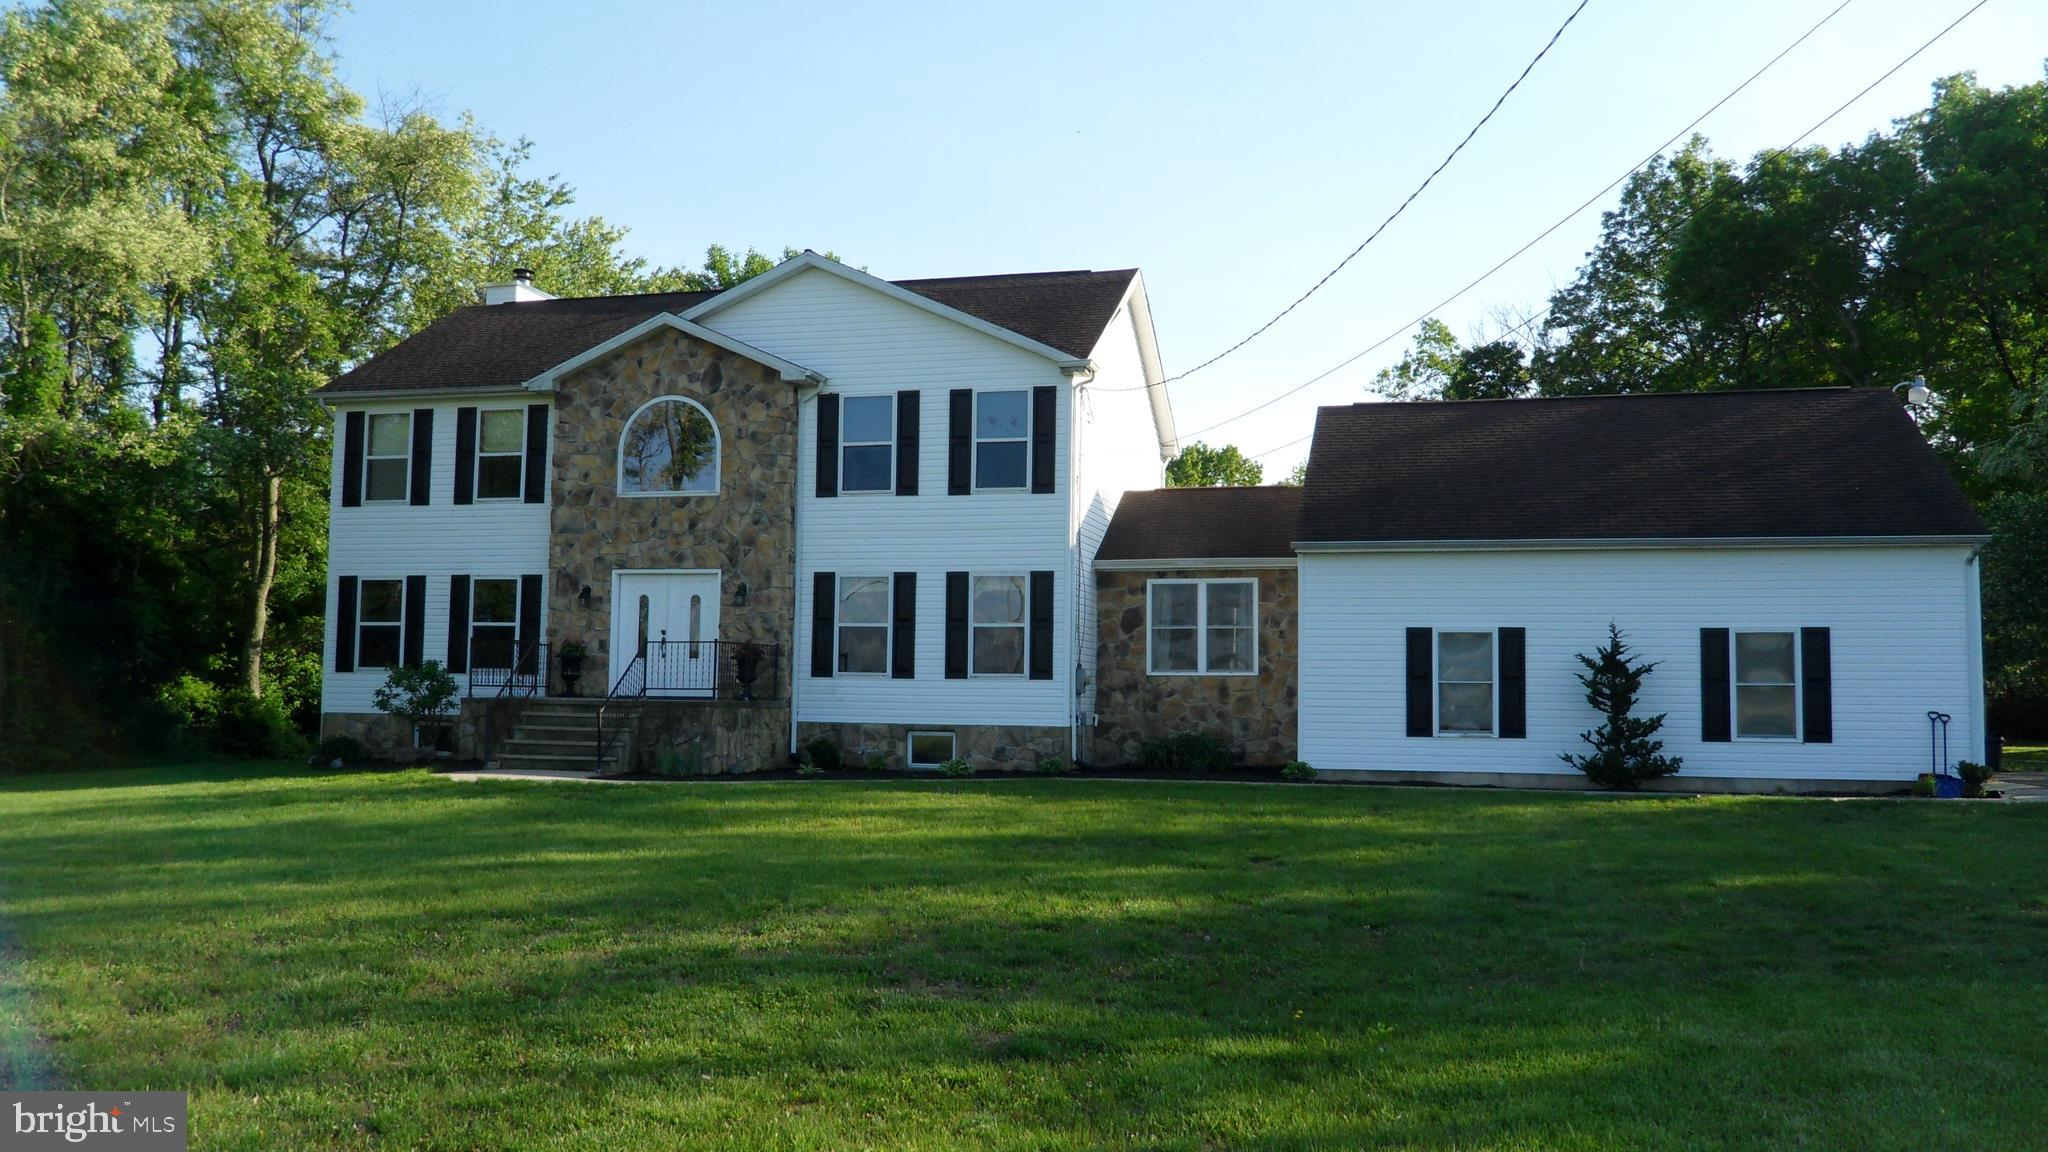 43 THREE BRIDGE ROAD, MONROEVILLE, NJ 08343